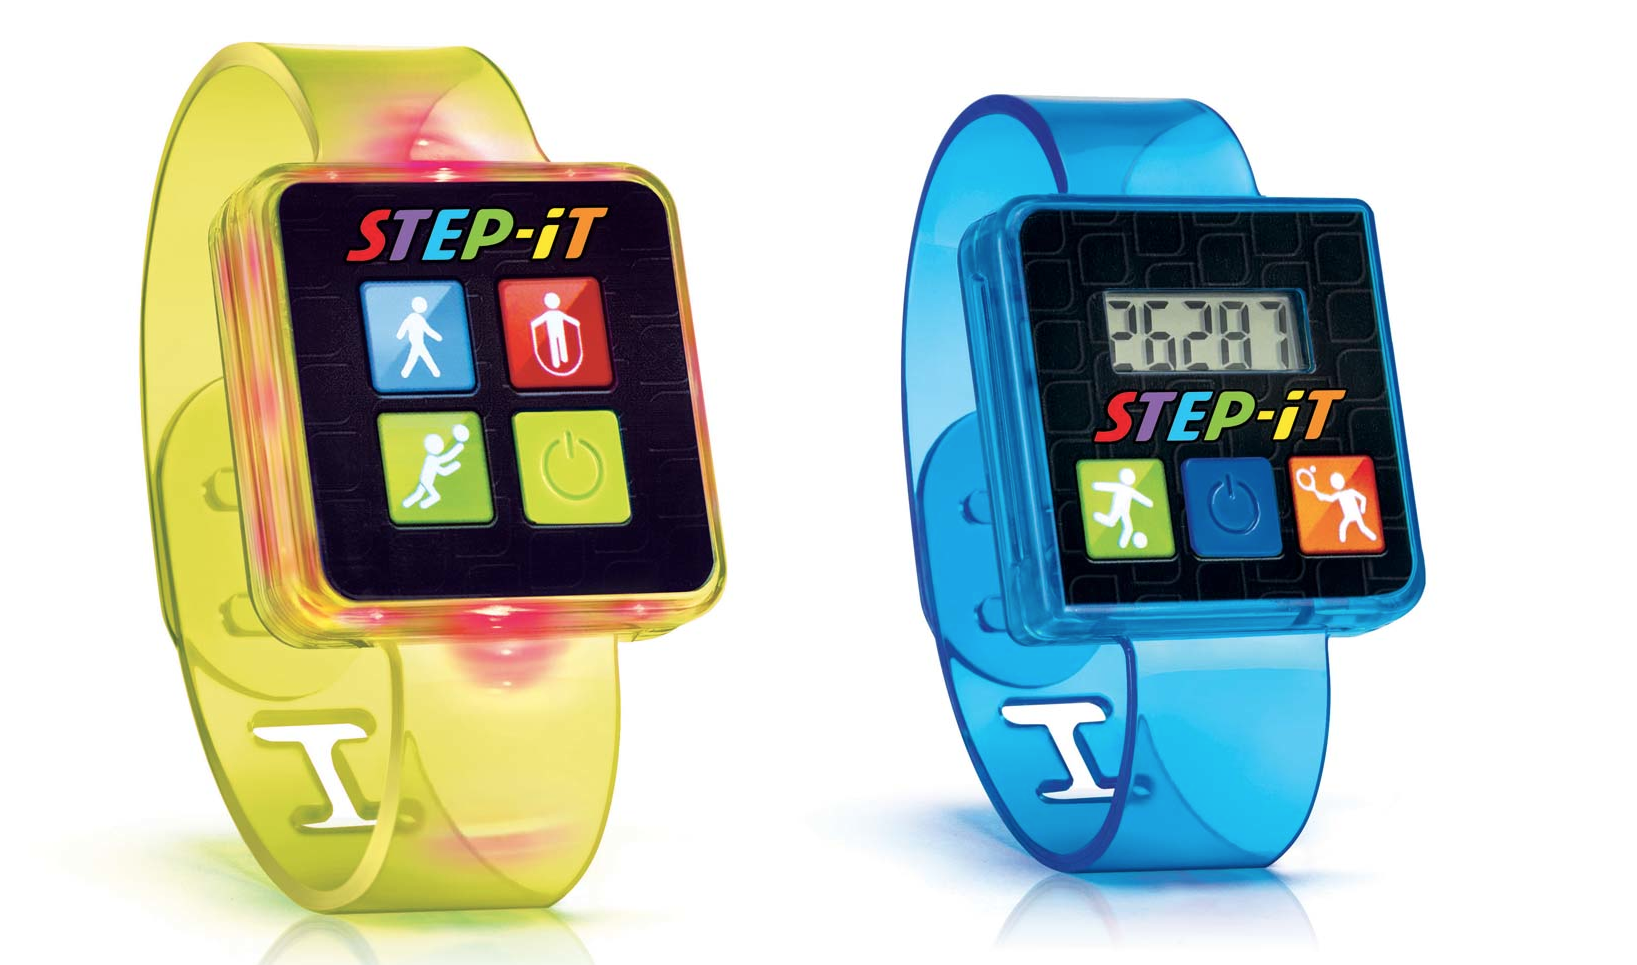 McDonald's Officially Recalls 29 Million Happy Meal Fitness Trackers Over Concerns About Rashes, Burns